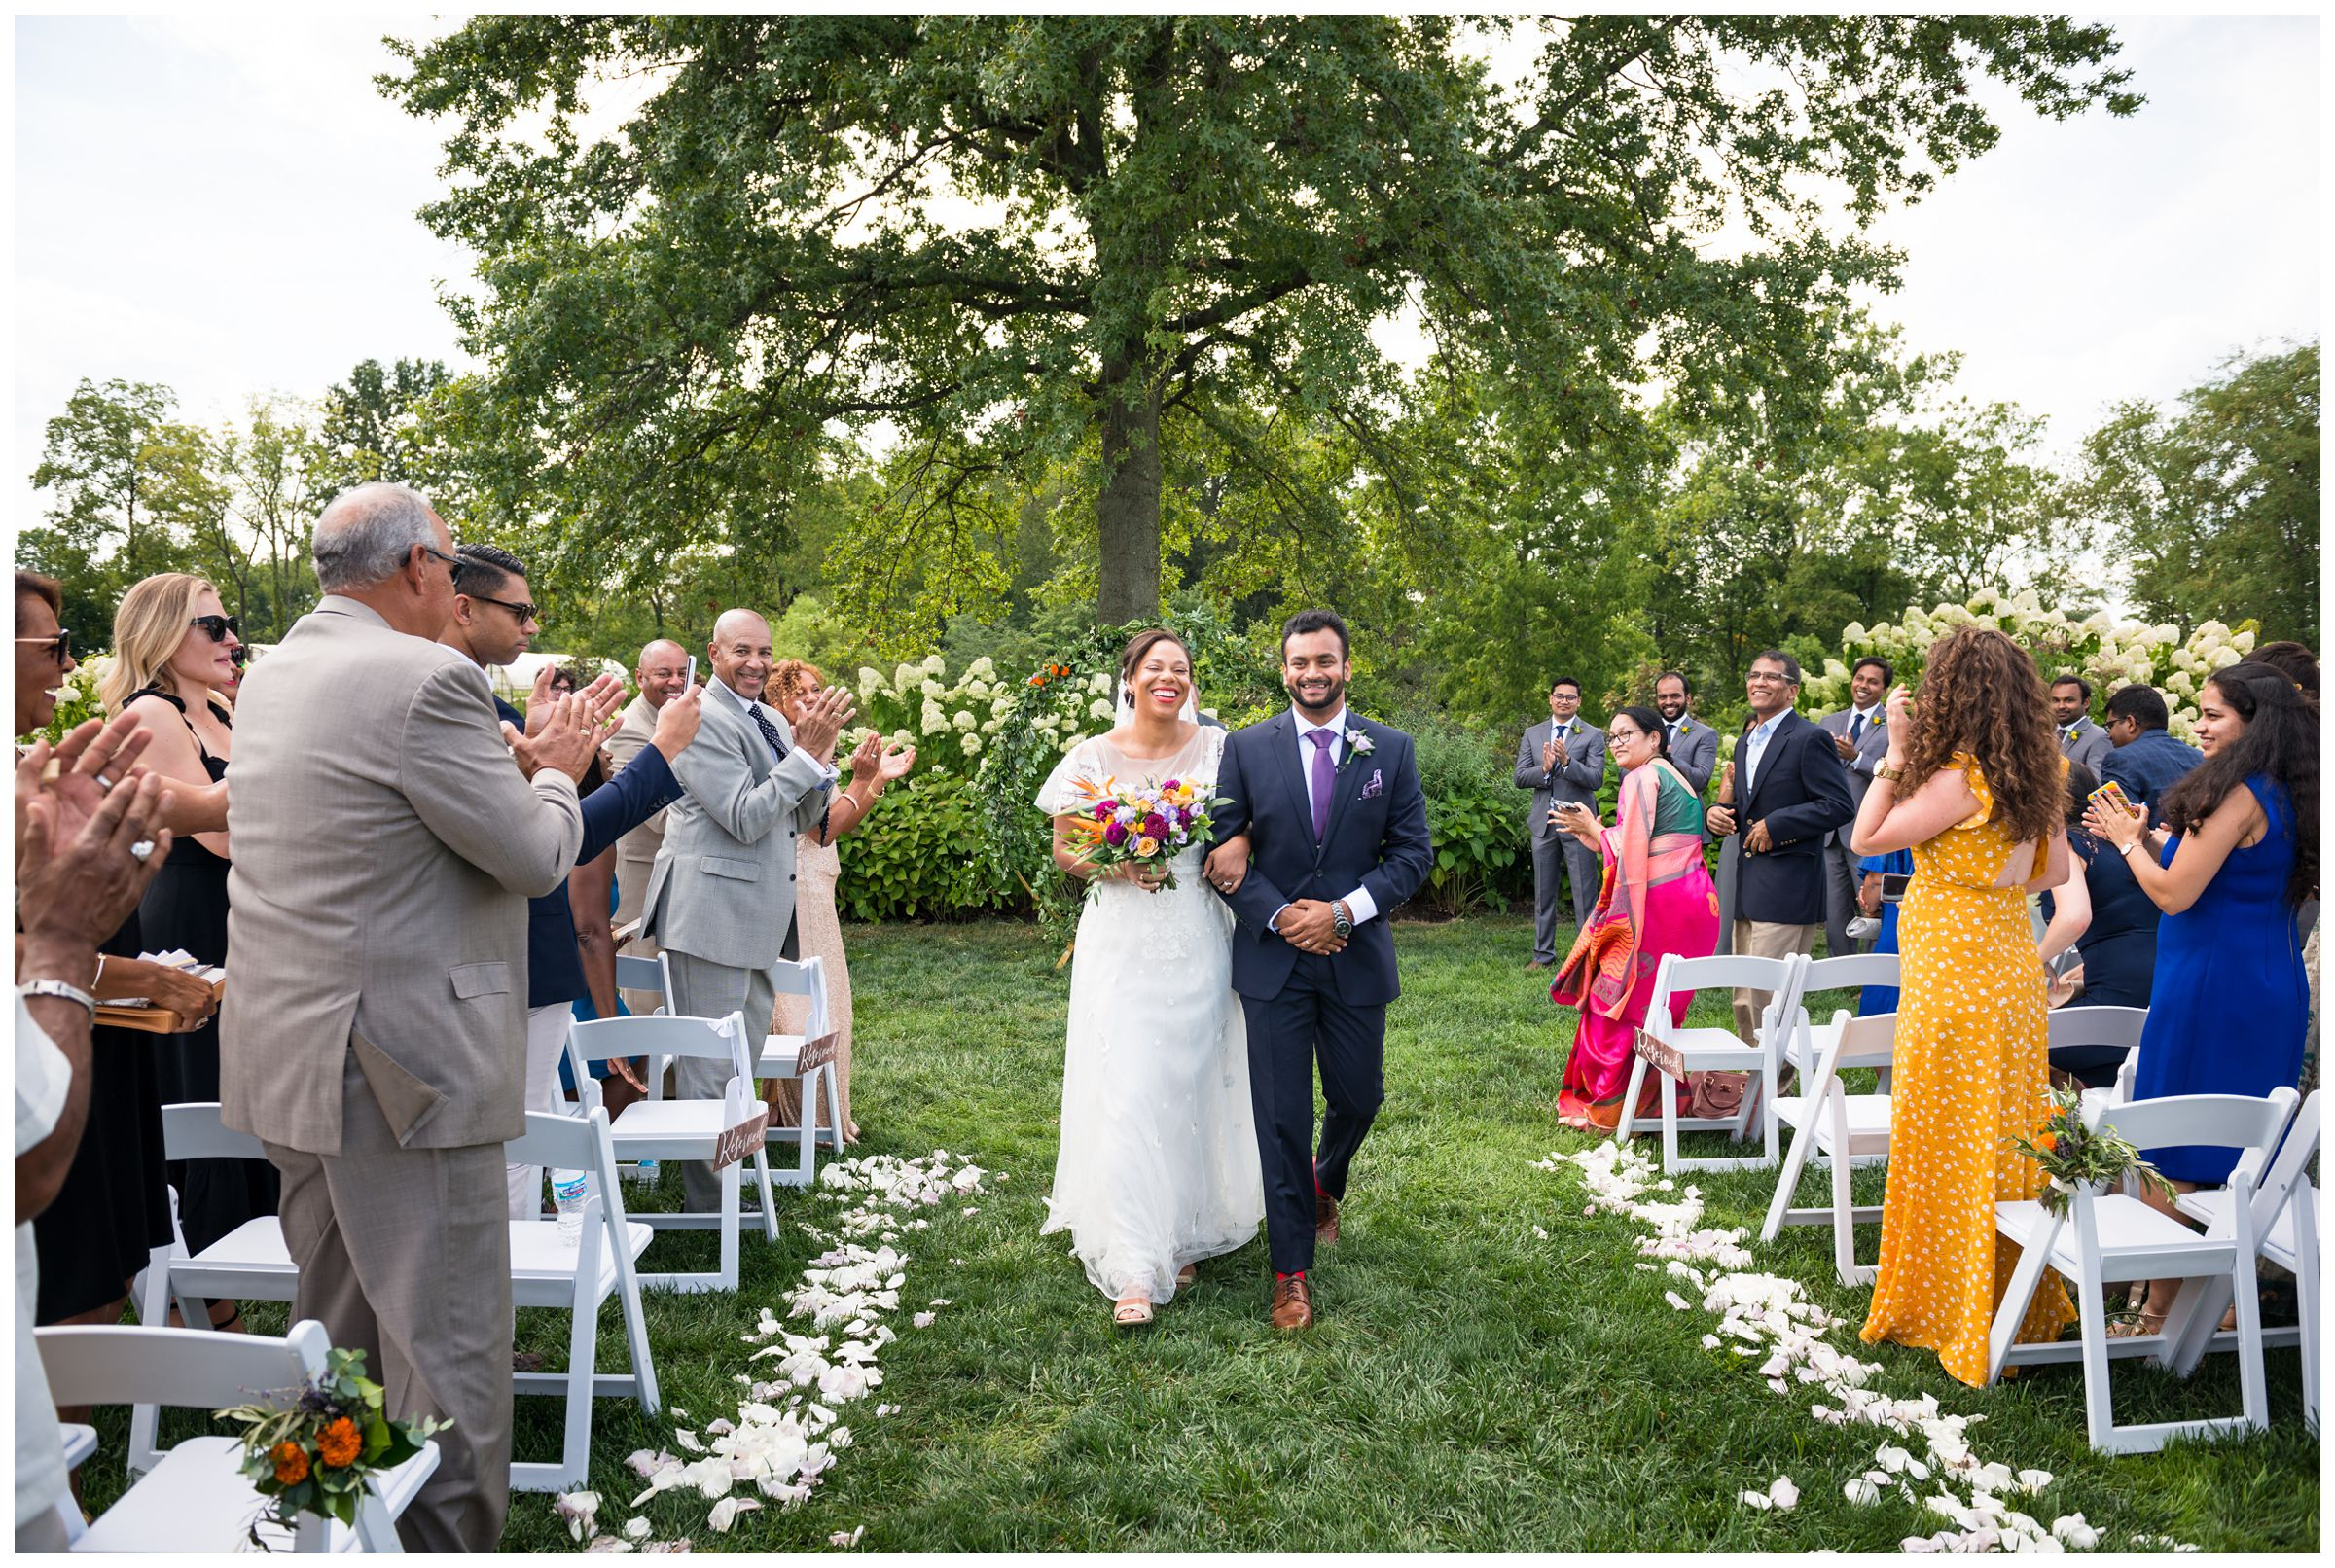 bride and groom exit wedding ceremony after colorful summer Indian wedding at Jorgensen Farms